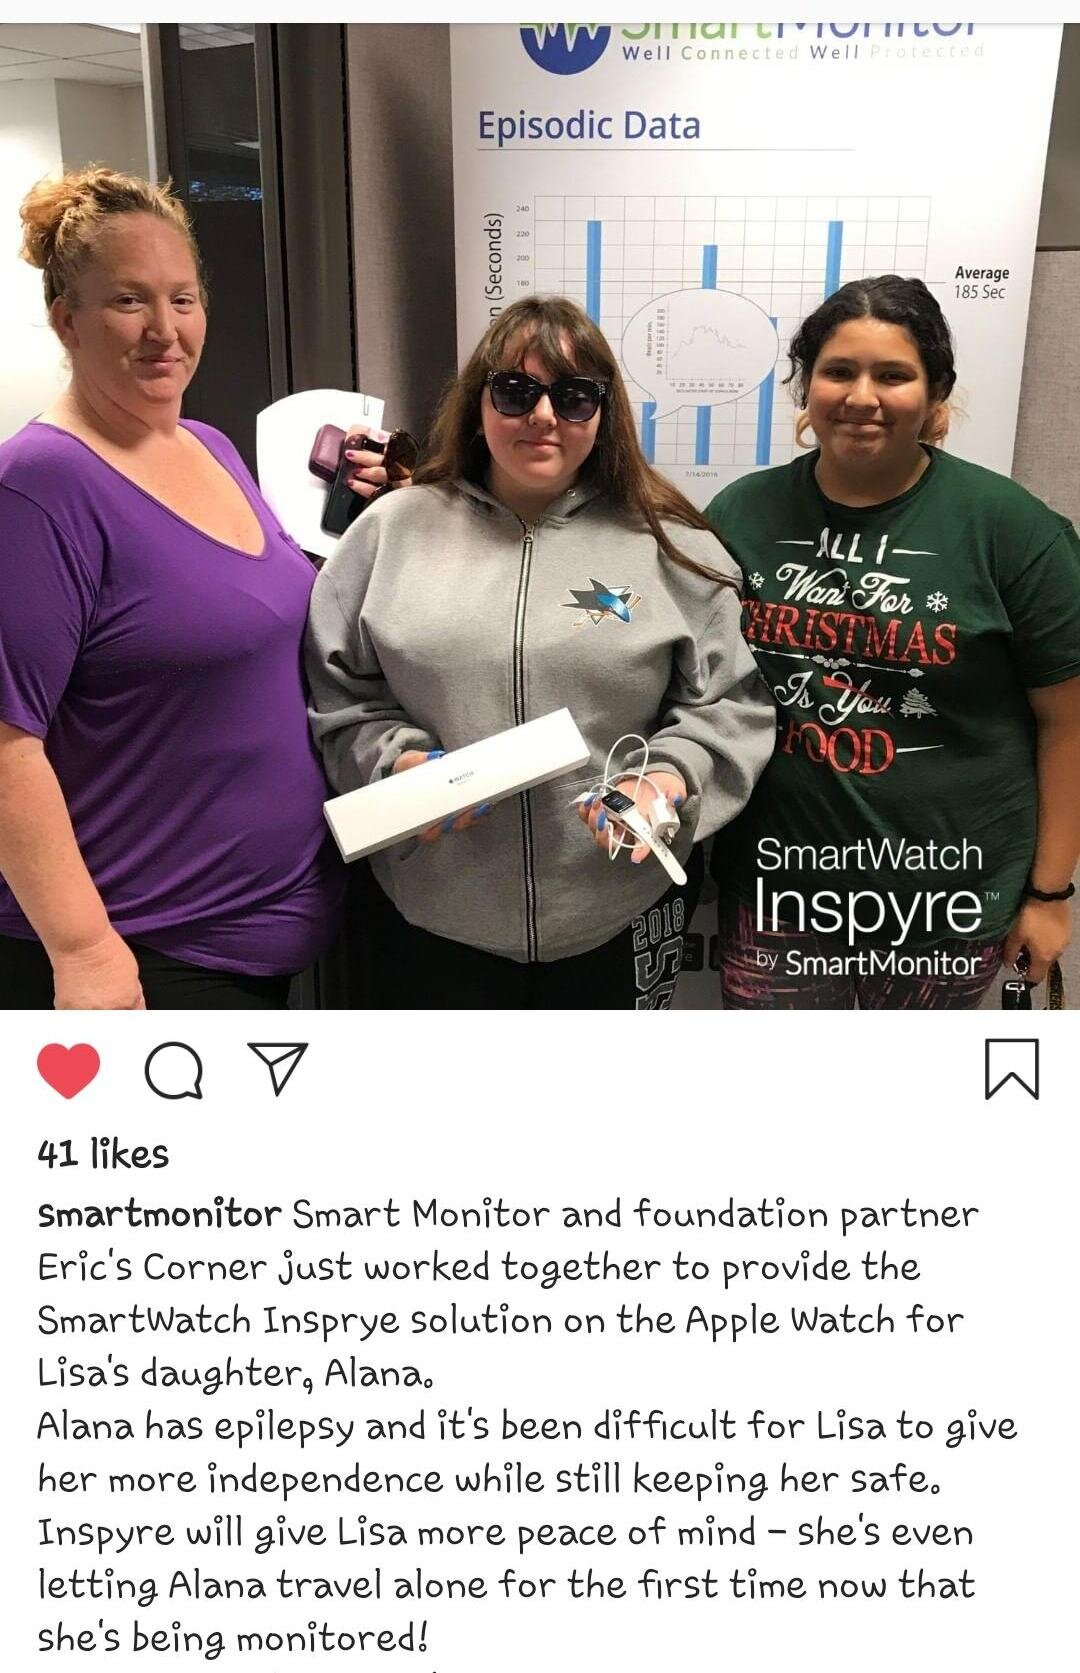 - Eric's Corner is proud to have these fine folks as part of our community.